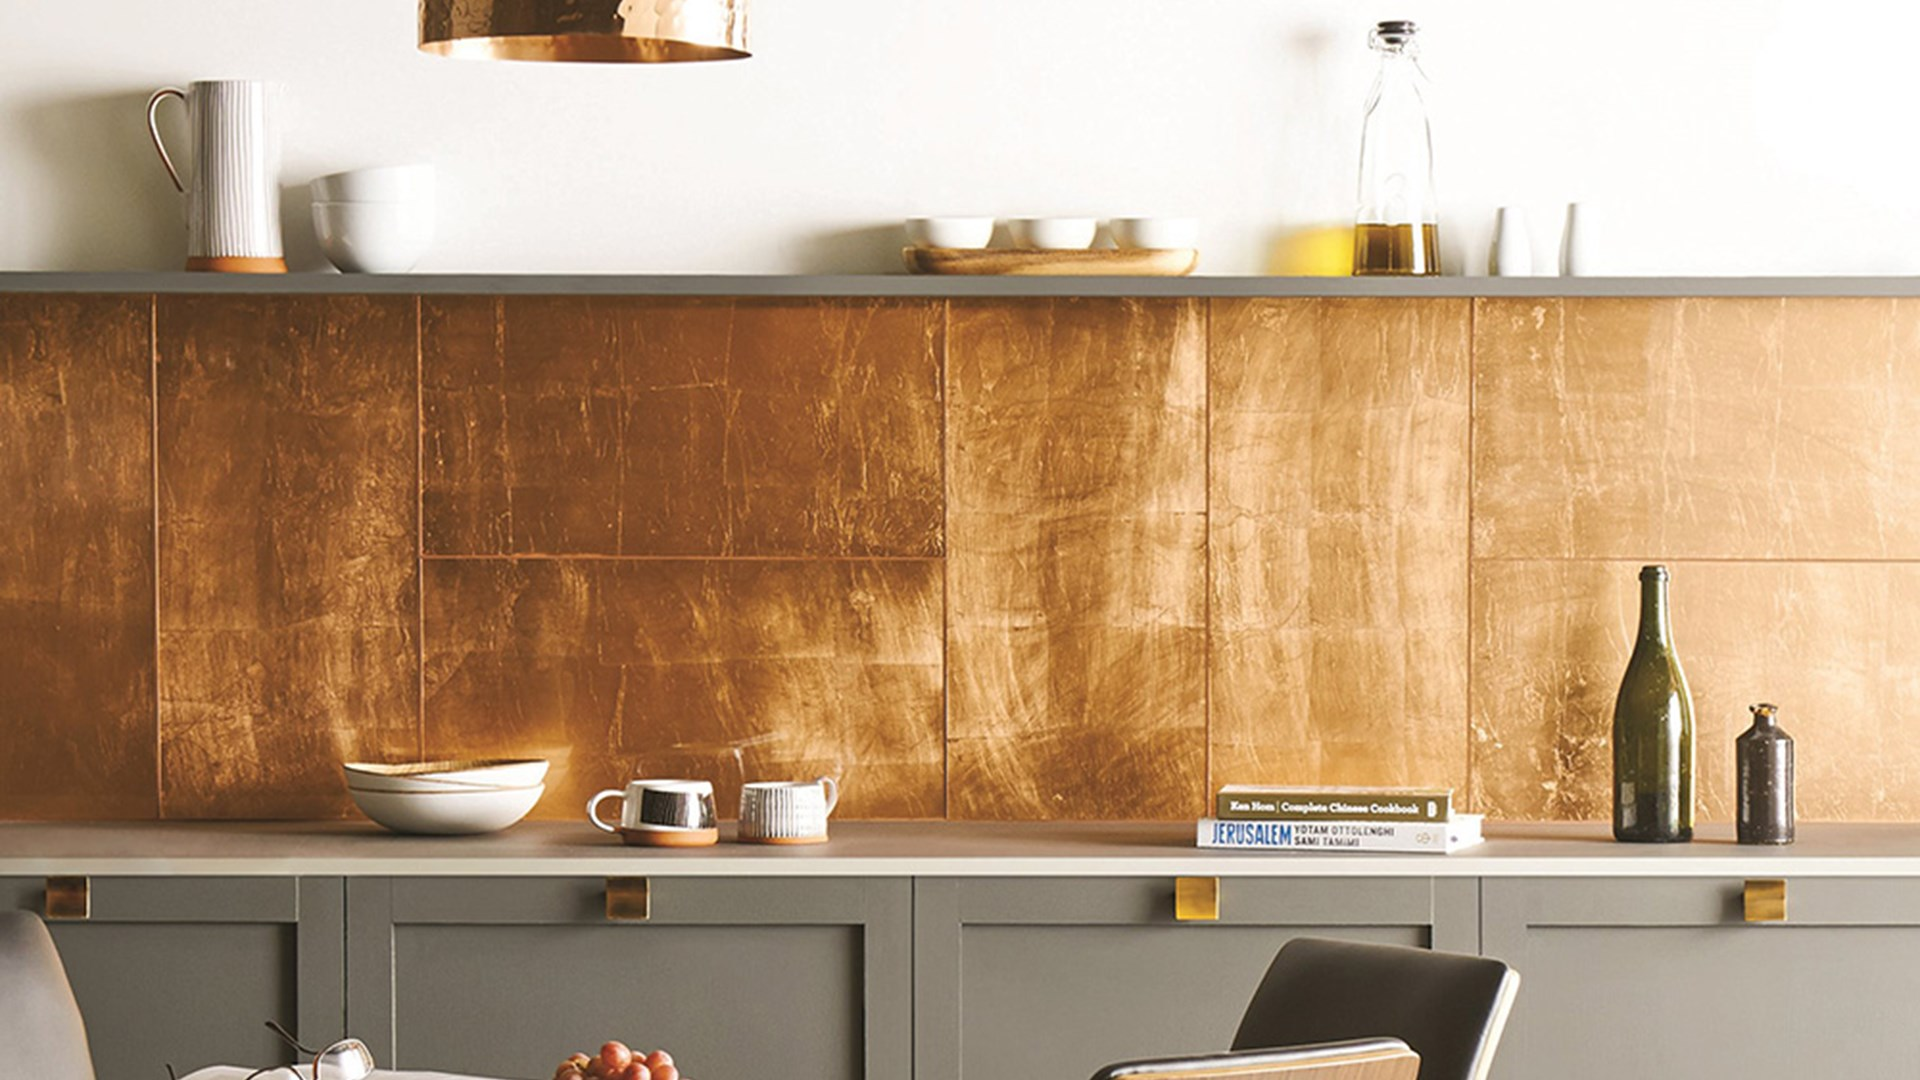 Original Style Glworks Copper Leaf Gl Gw Clf6030 With Metallic Steel Porcelain Tiles